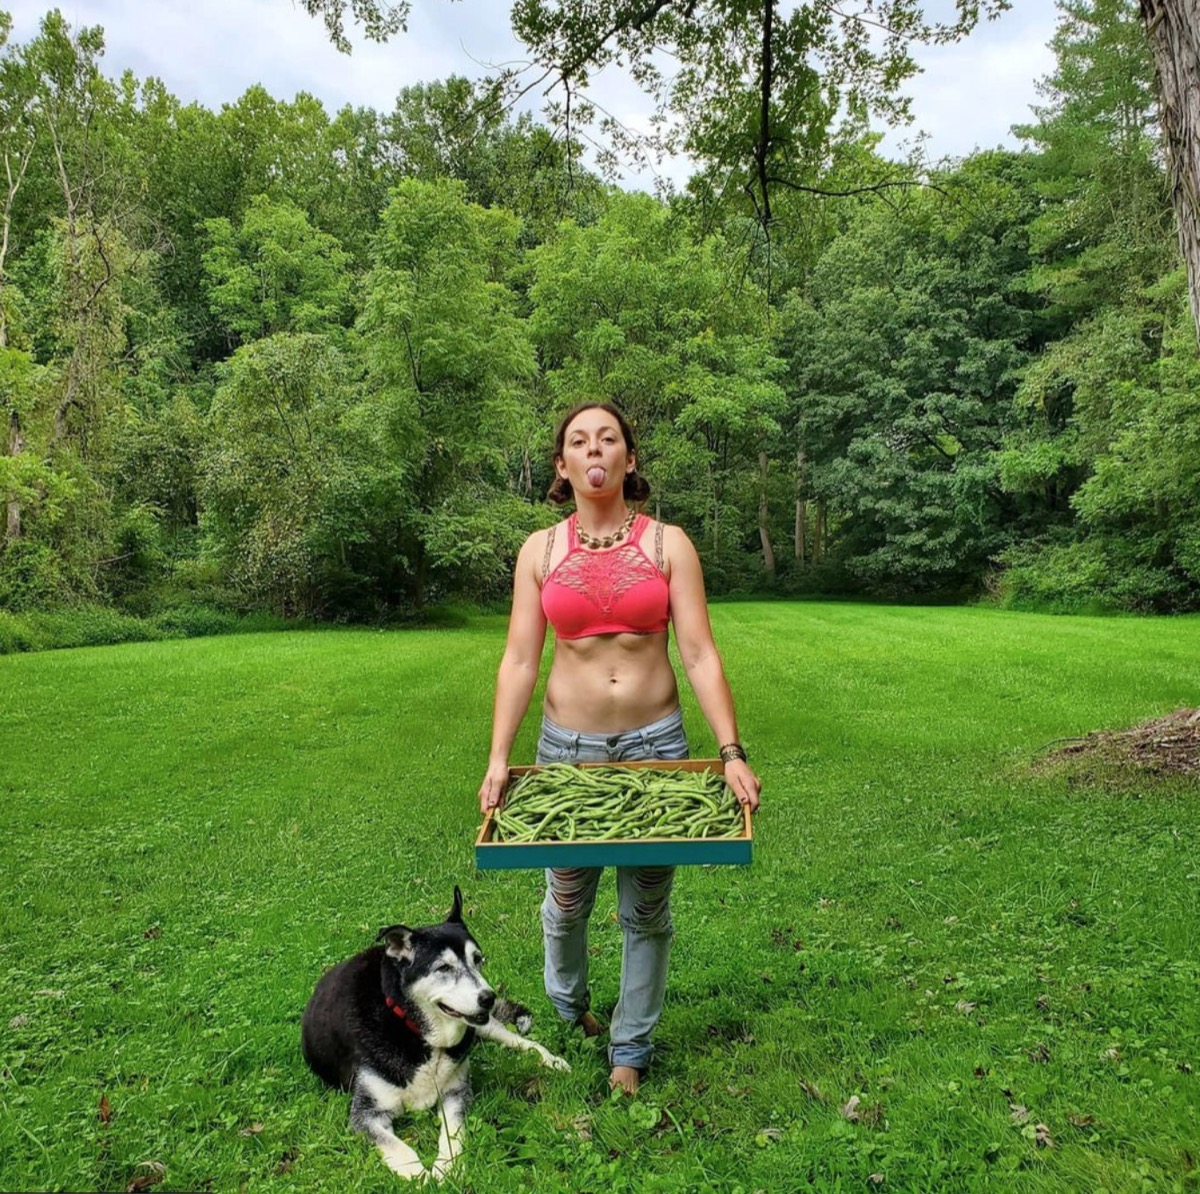 Mackenzie Rosman wearing jeans and a red crop top in a green field carrying a tray of vegetables and standing next to a black and white dog